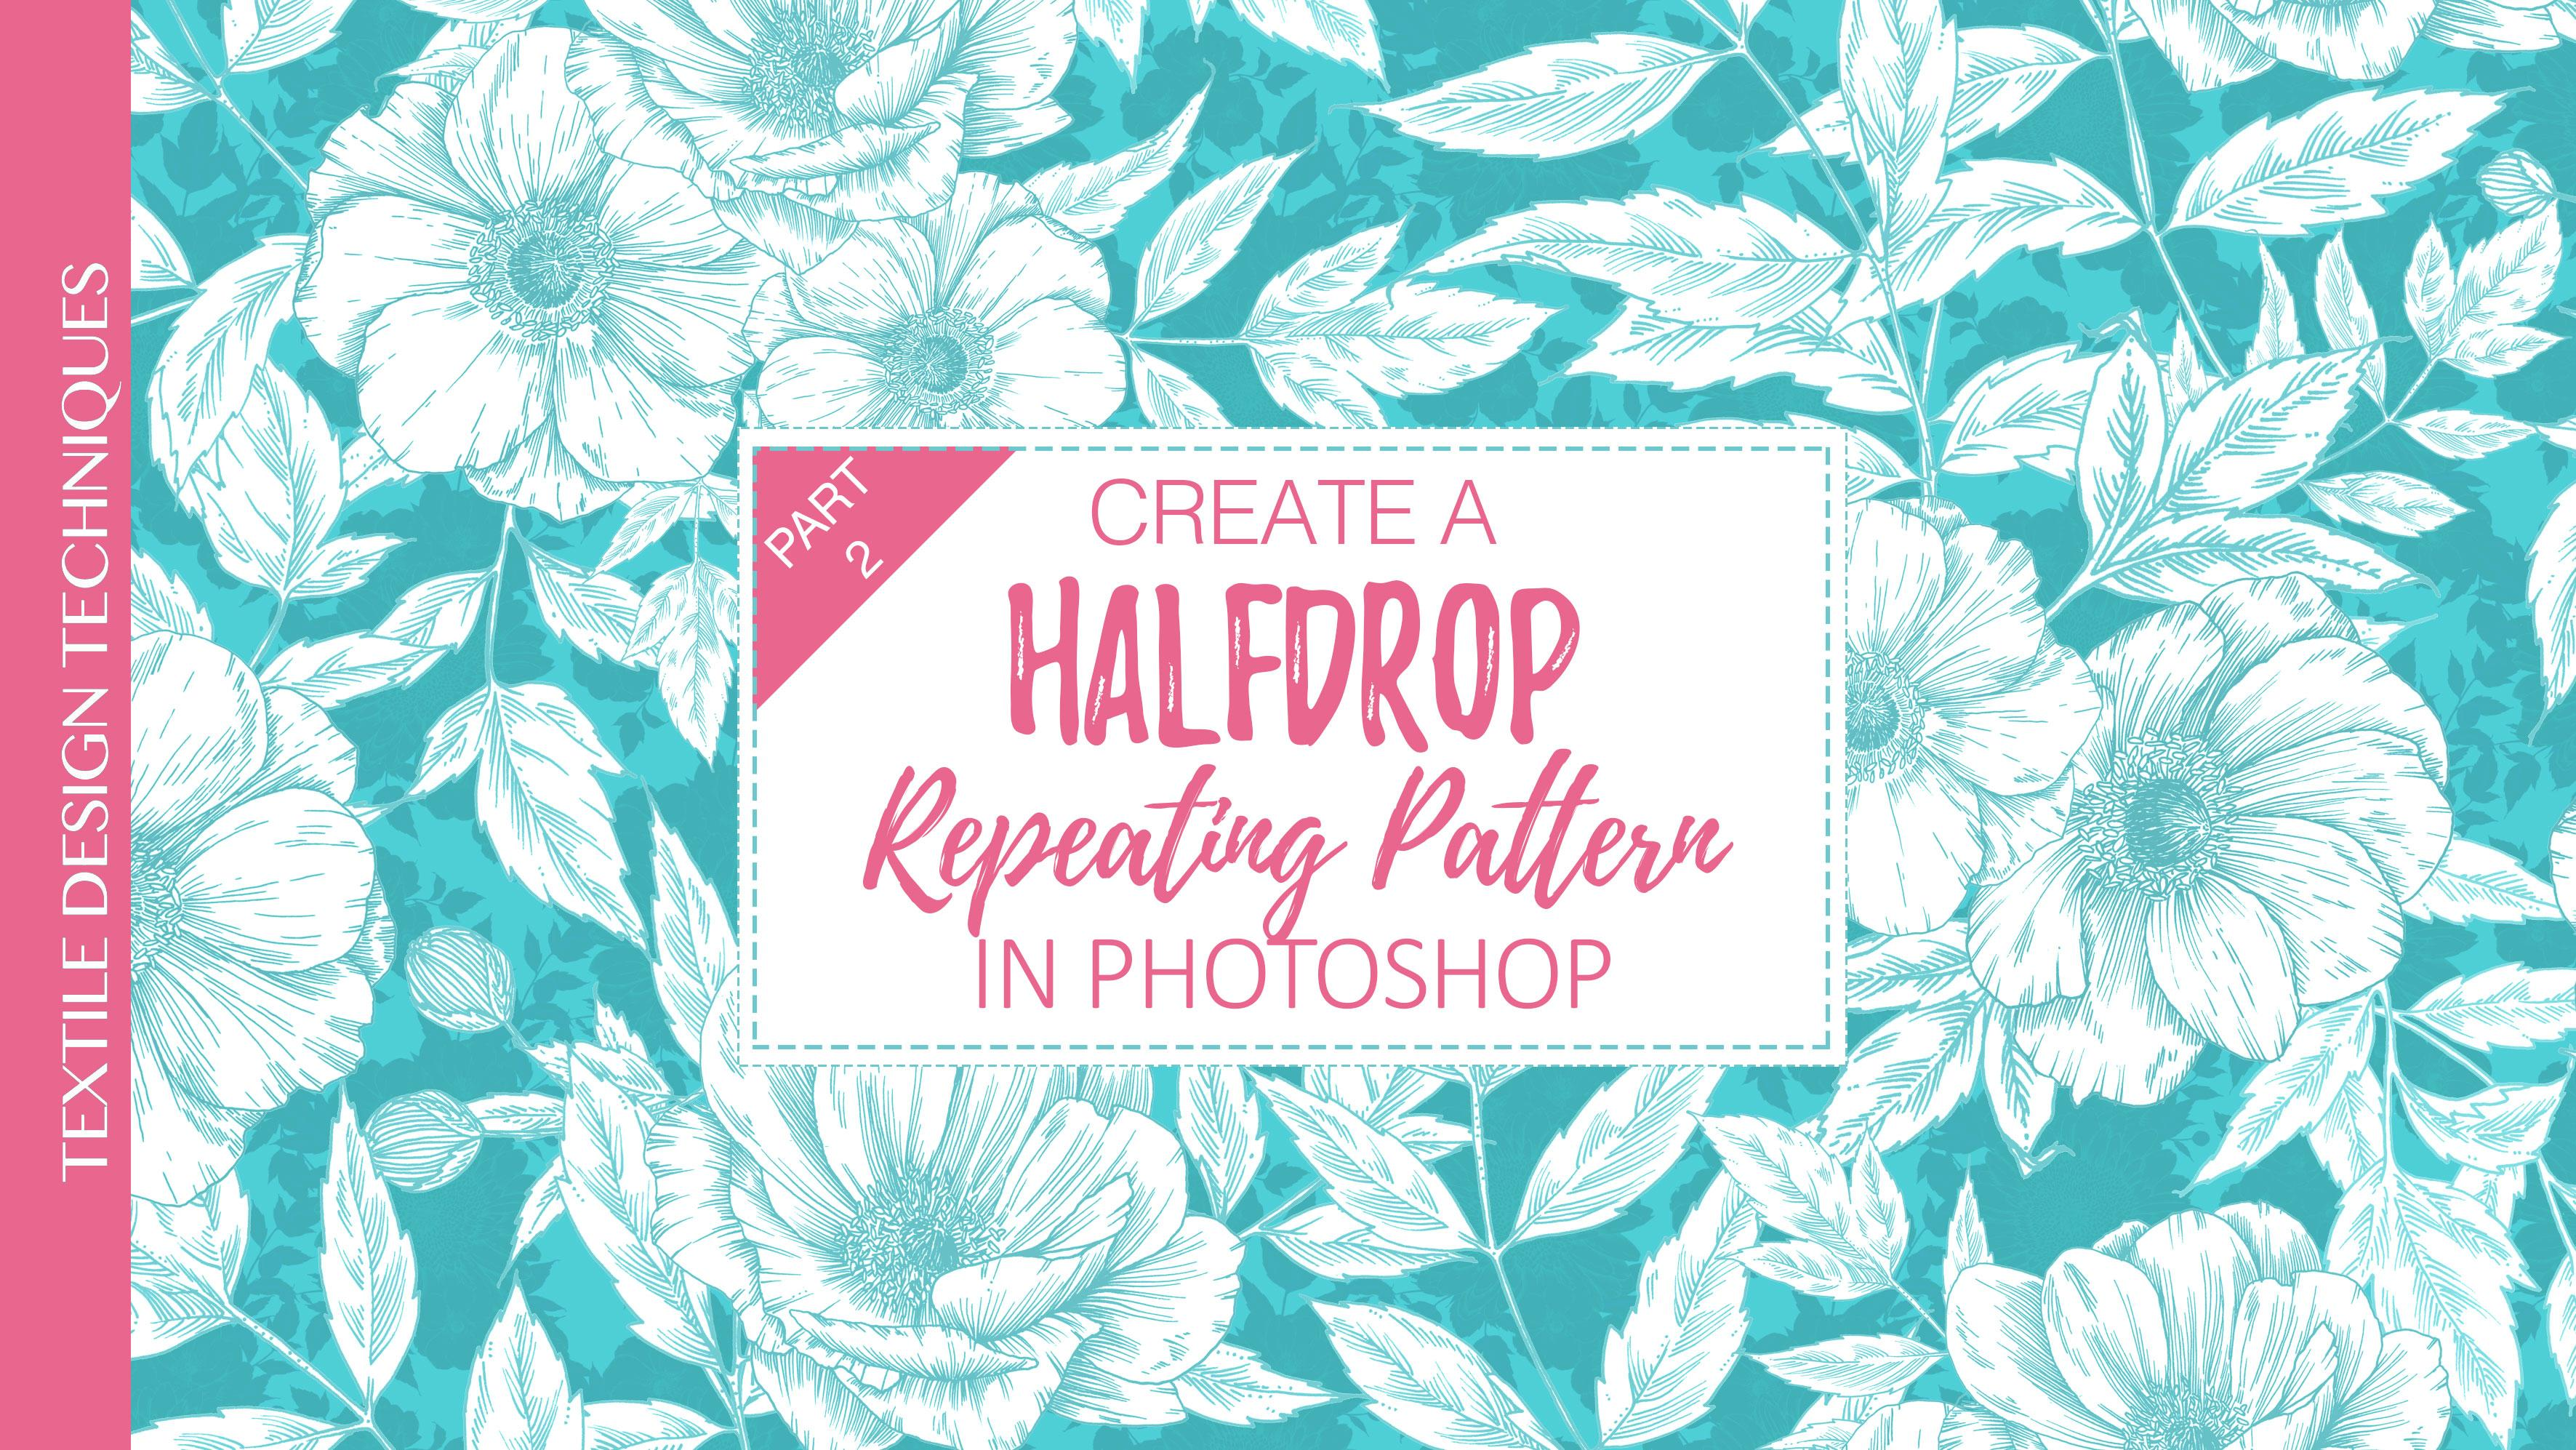 Textile Design Part 2: Create a Halfdrop Repeating Pattern in